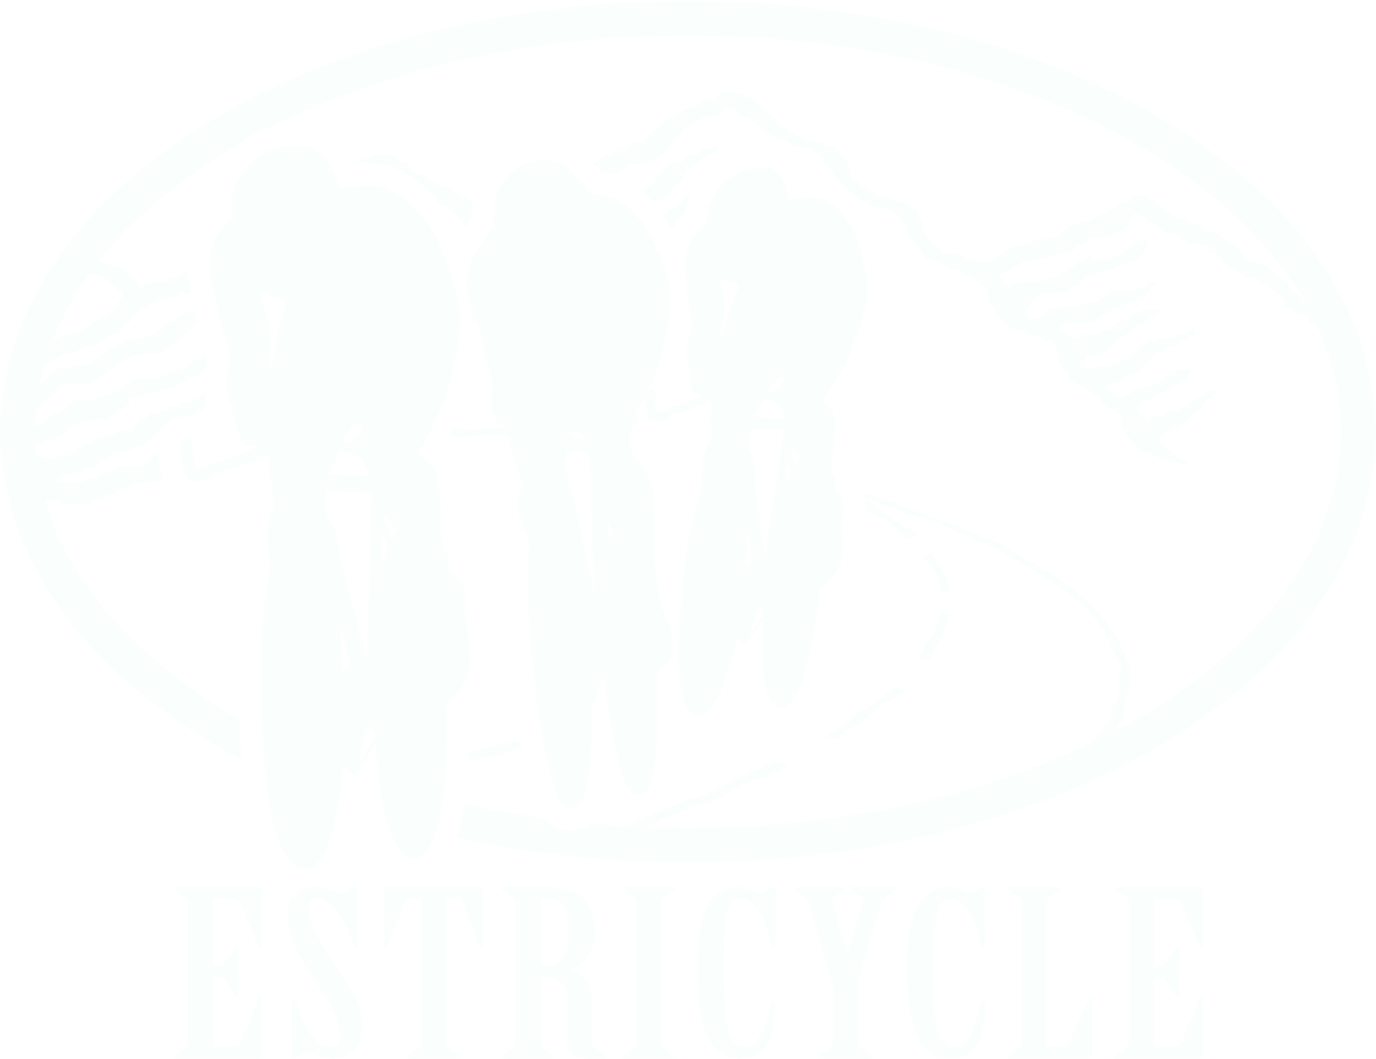 ESTRICYCLE